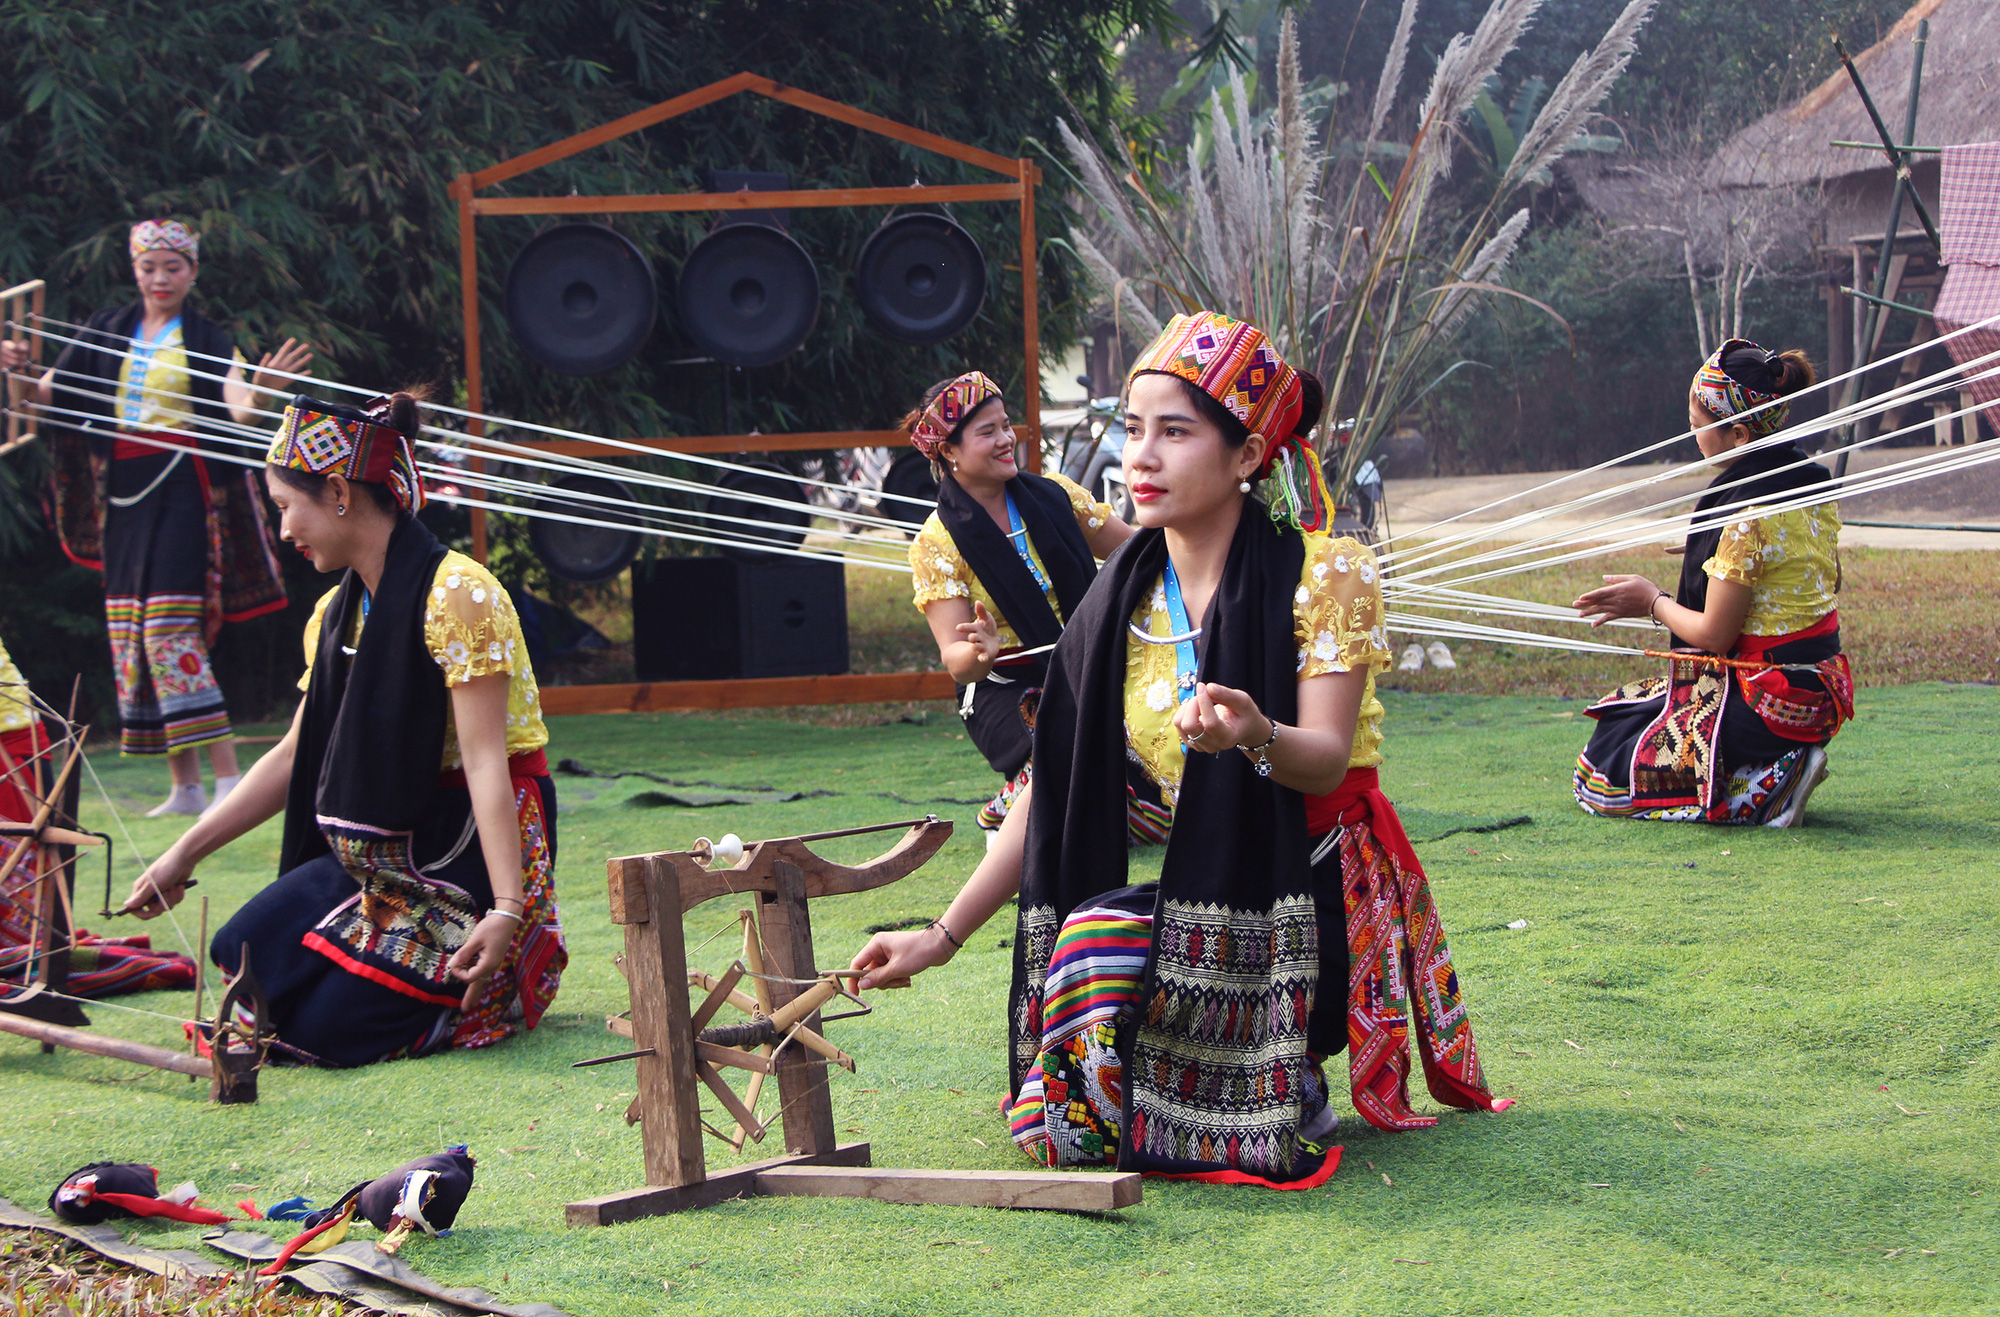 Women perform Kho Mu ethnic people's traditional dance at a festival at the Vietnam National Village for Ethnic Culture and Tourism in Hanoi, January 24, 2021. Photo: Ha Quan / Tuoi Tre